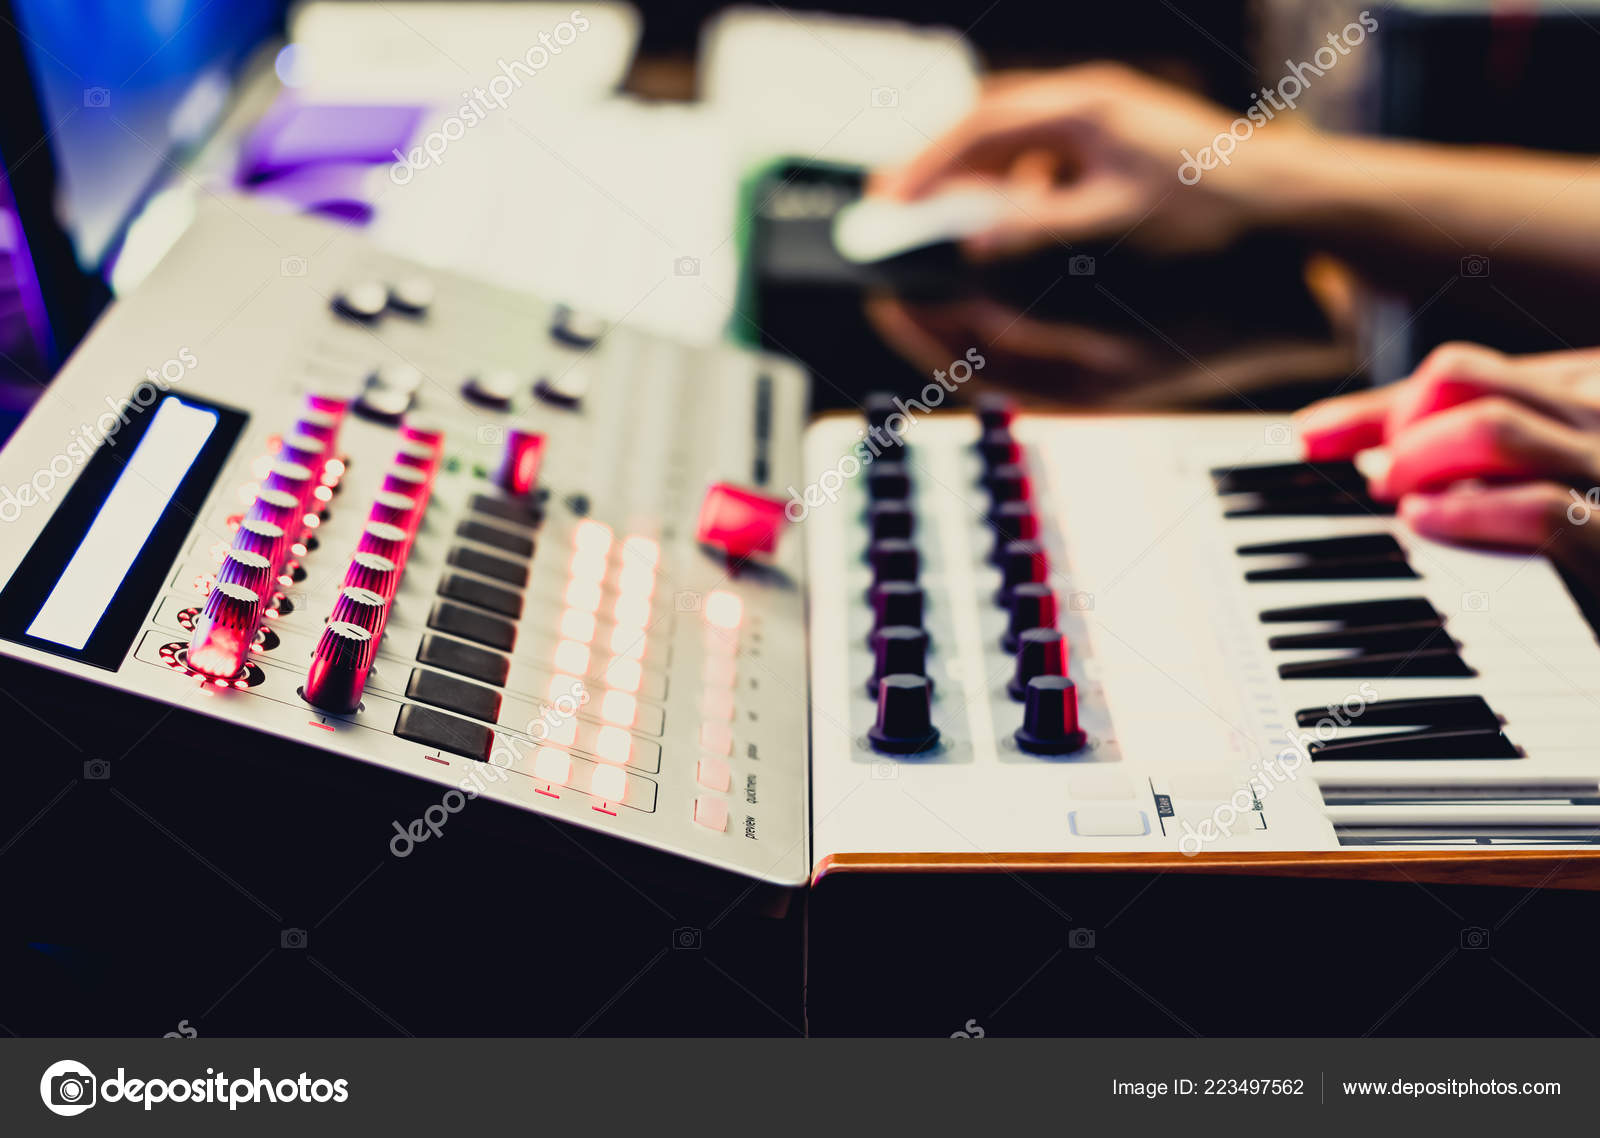 Music Producer Hands Composing Song Recording Equipment Midi